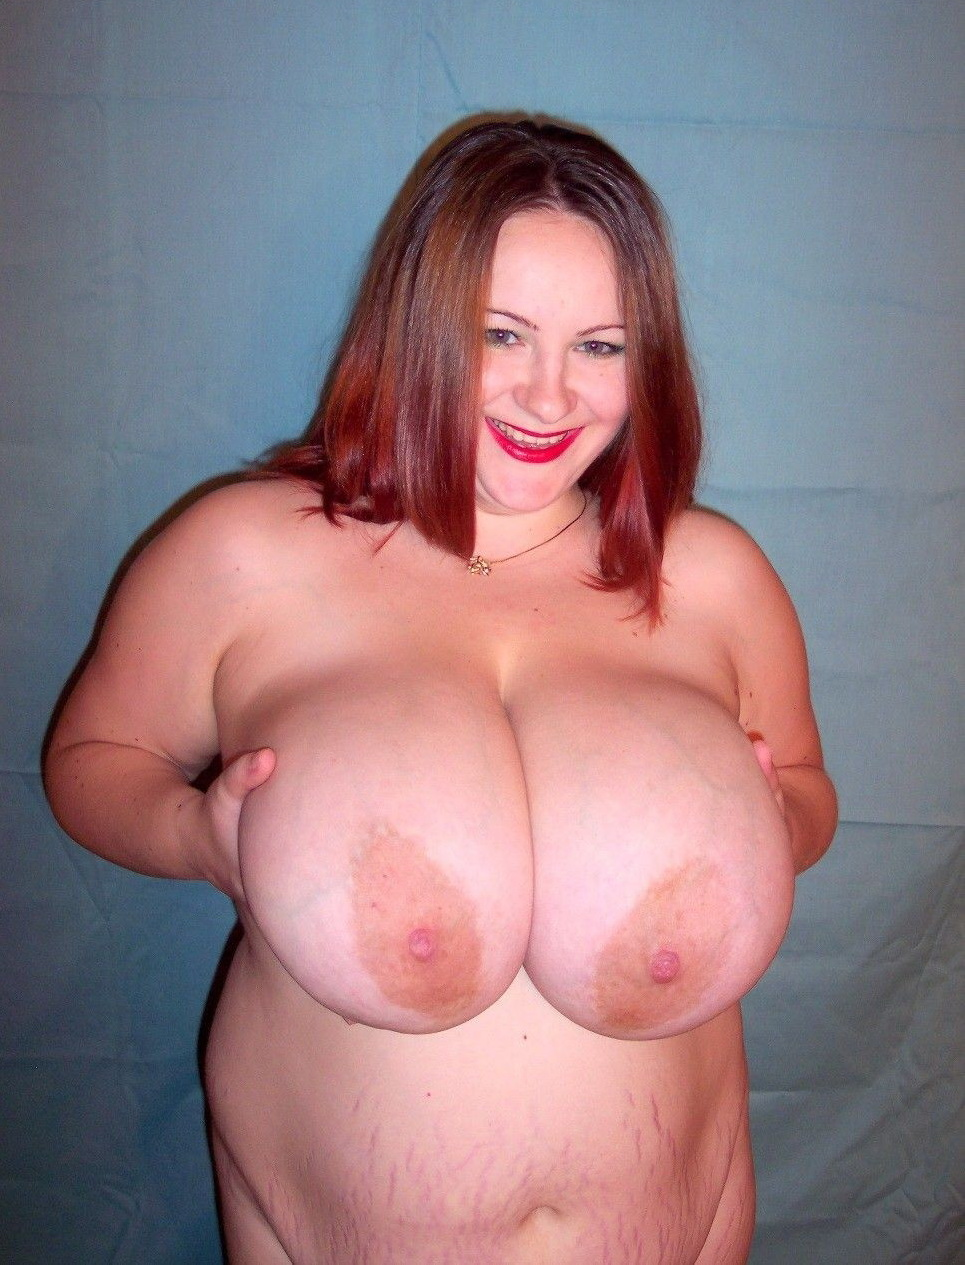 Fat and busty recommend you